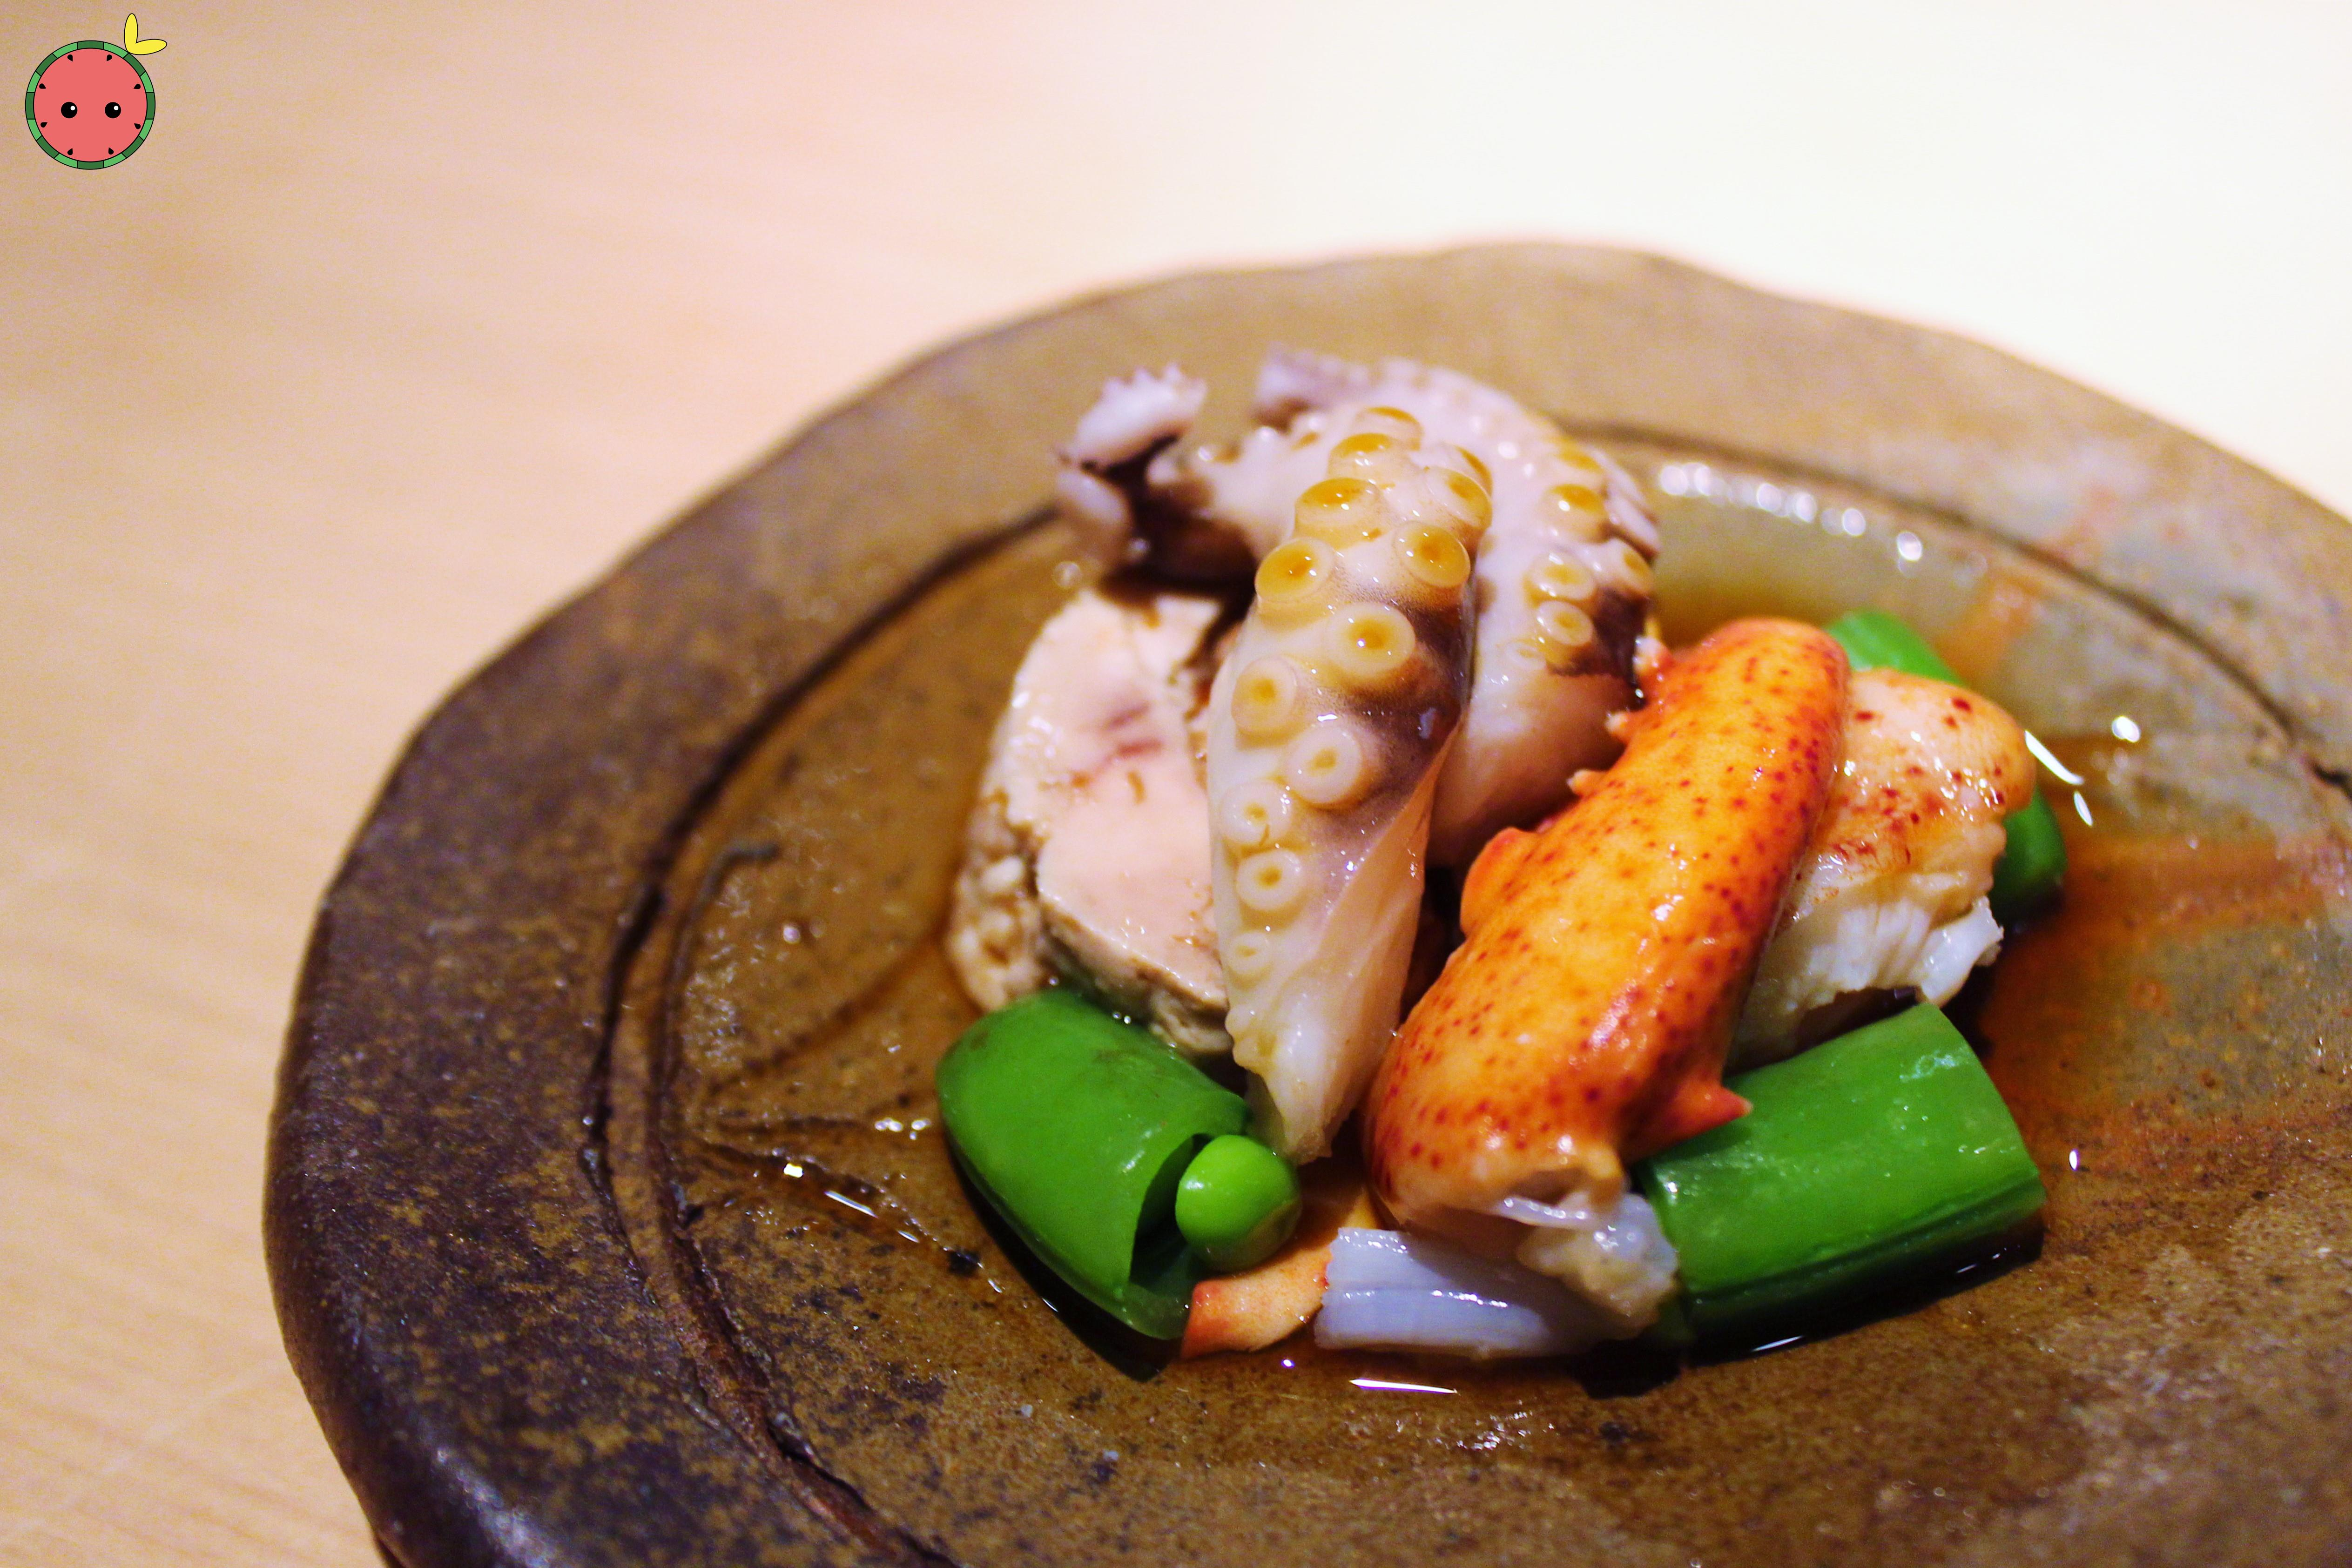 Lightly poached Main lobster, octopus from Portugal, steamed monk fish liver, sugar snap peas with c